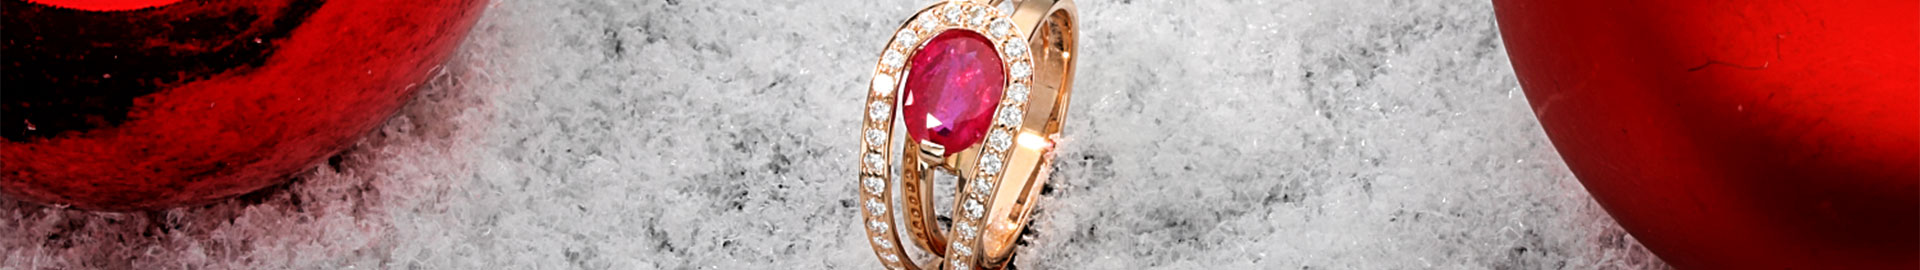 18 Carat Red Gold ring with 2,020 ct. oval Ruby Zazare Diamonds